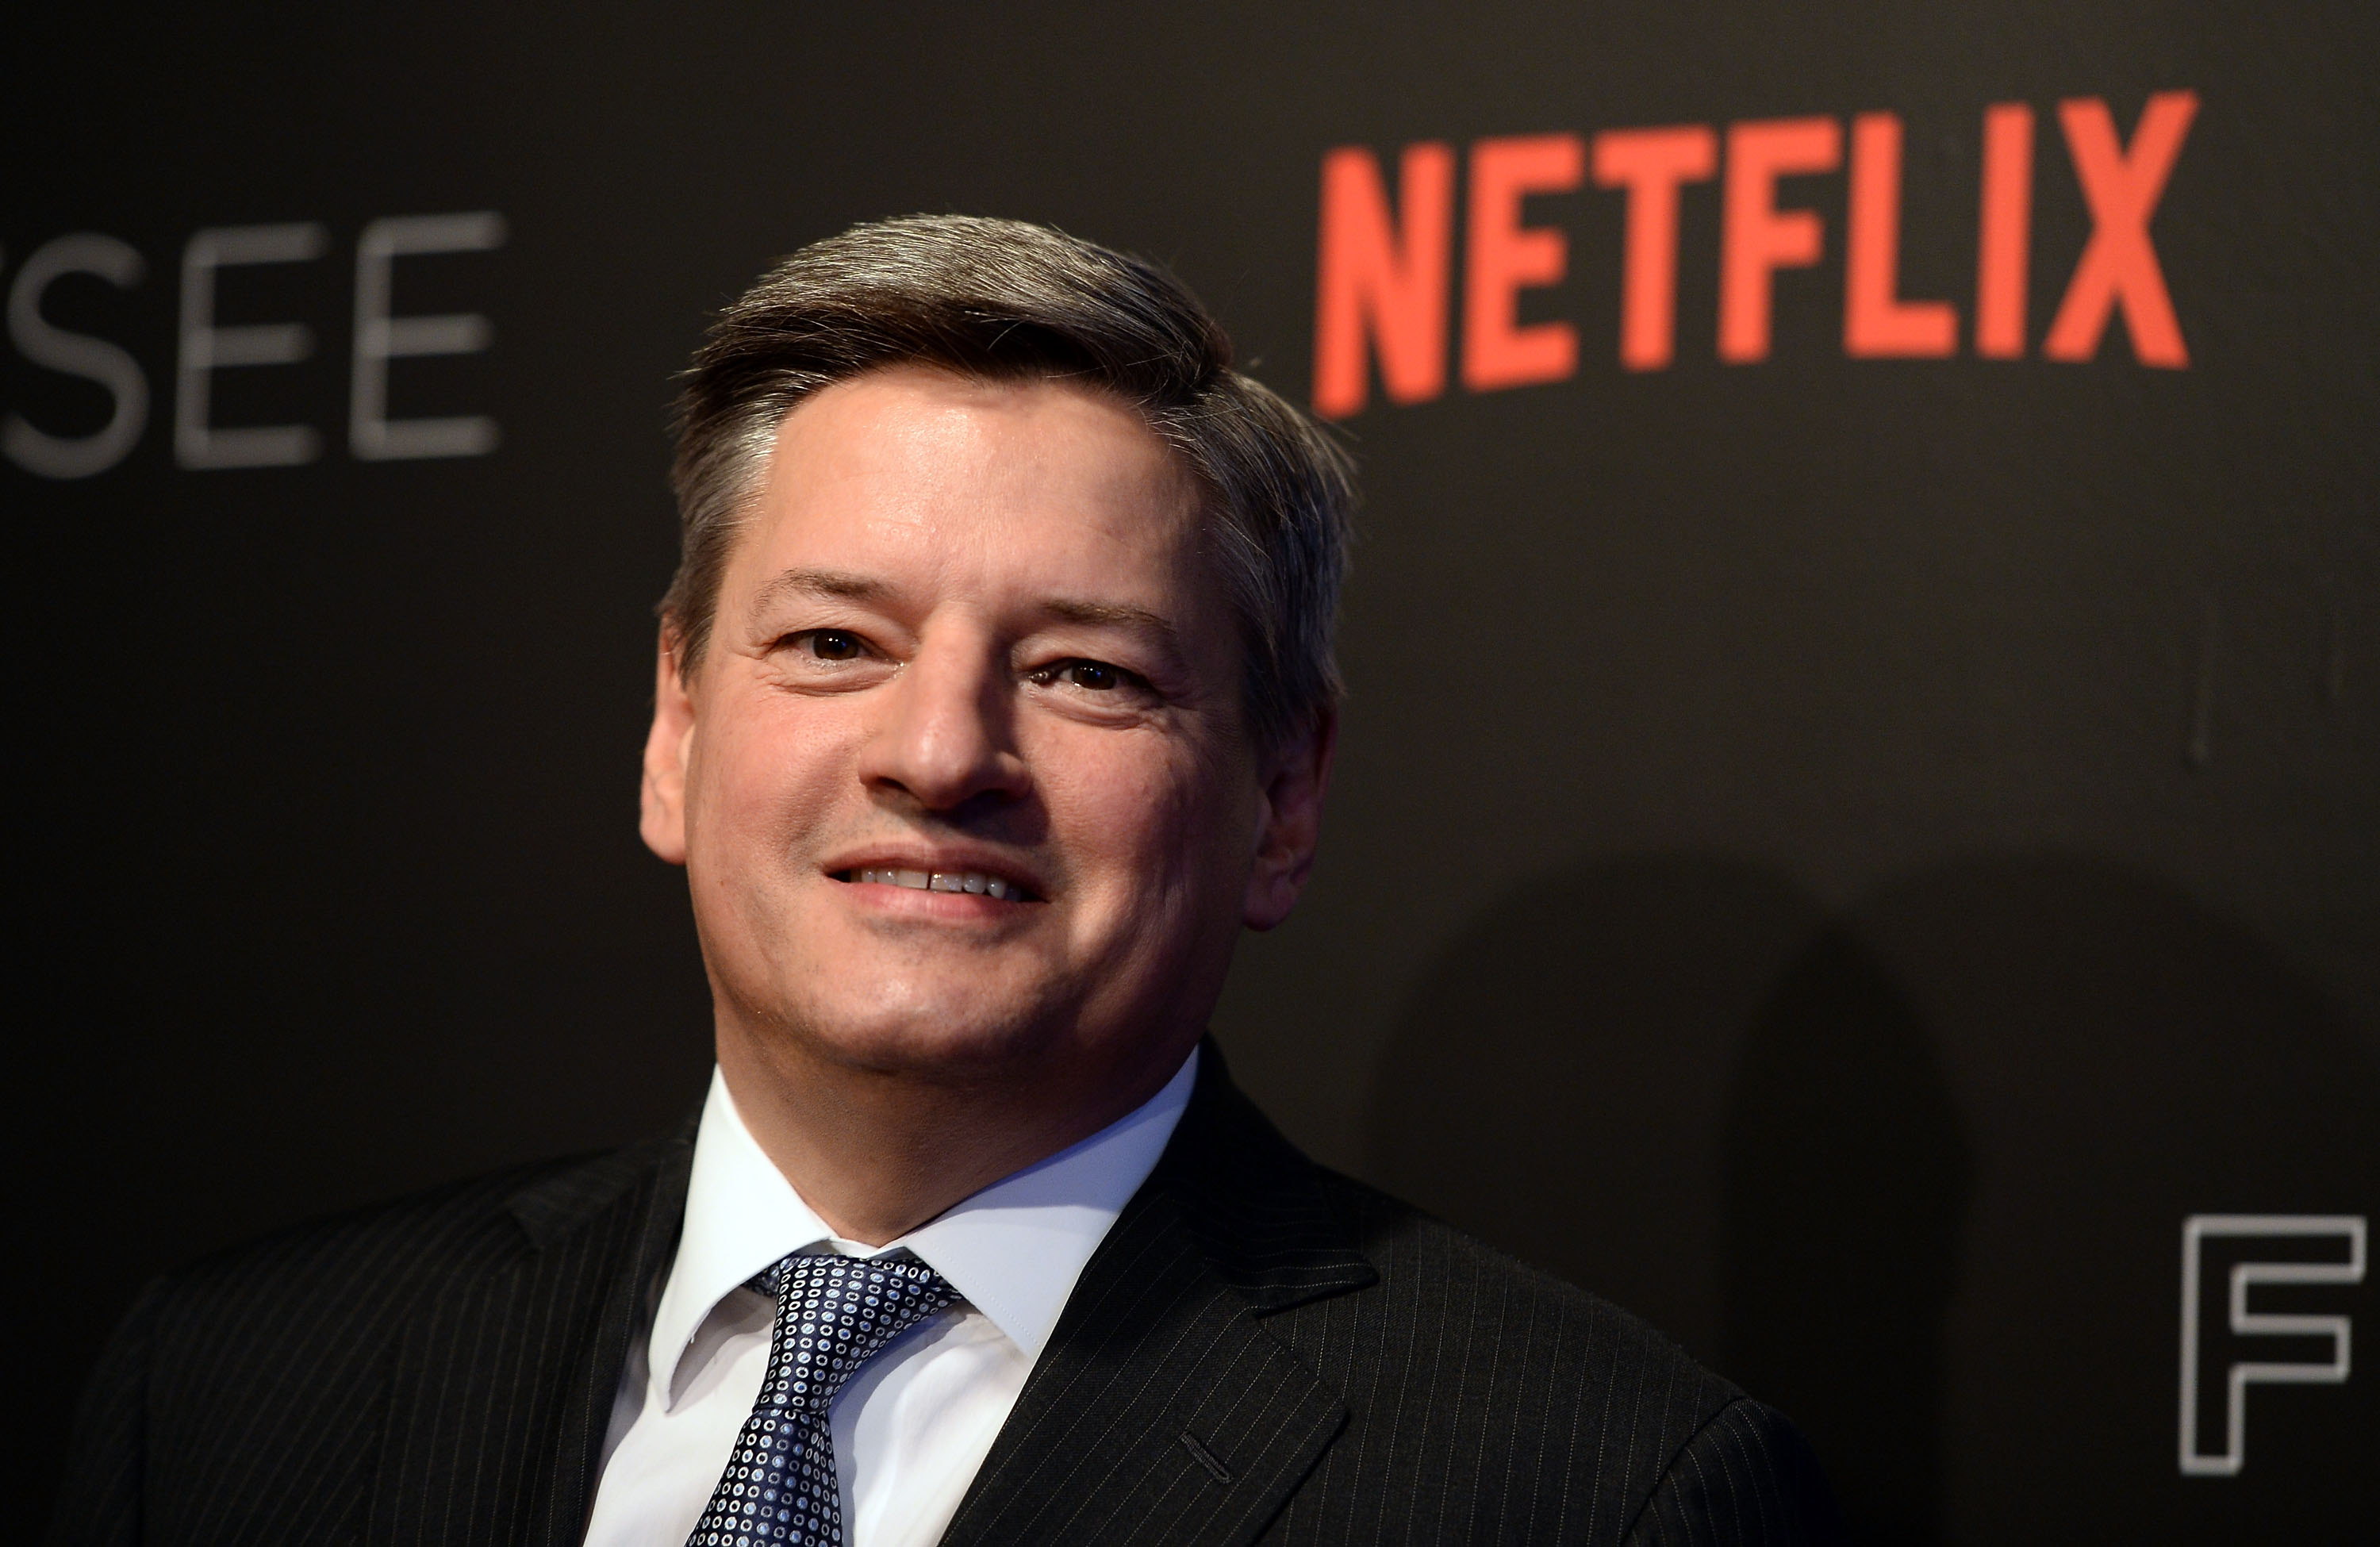 Netflix exec says 85 percent of new spending will go towards original content		 		 	Anthony Ha         @	       	8 hours